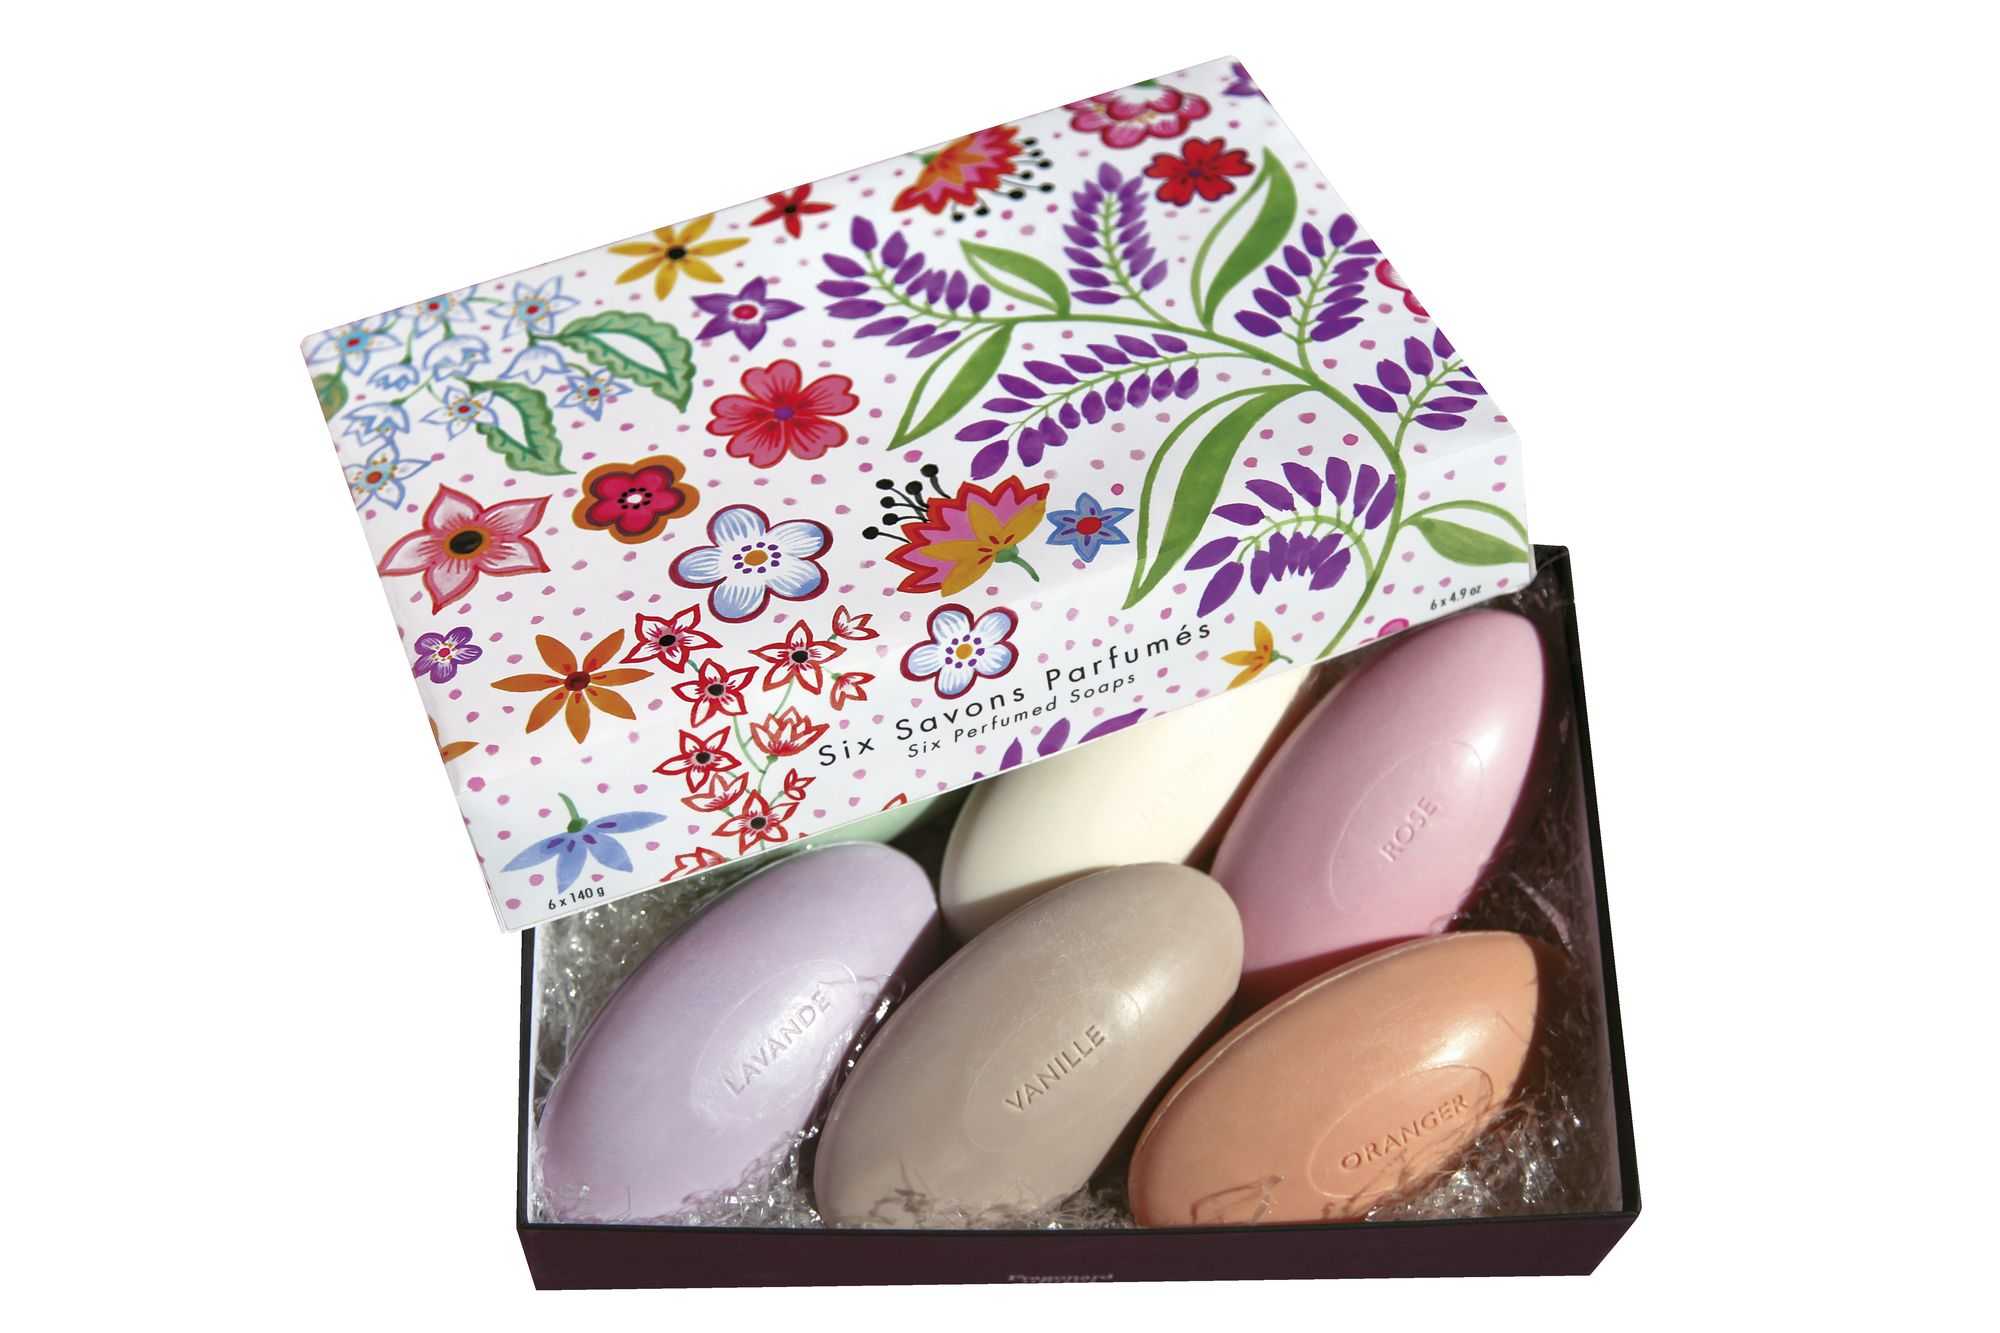 A beautiful box with flowers printed on the lid is open to show colorful-- purple, yellow, brown, pink and orange-- Fragonard soaps.